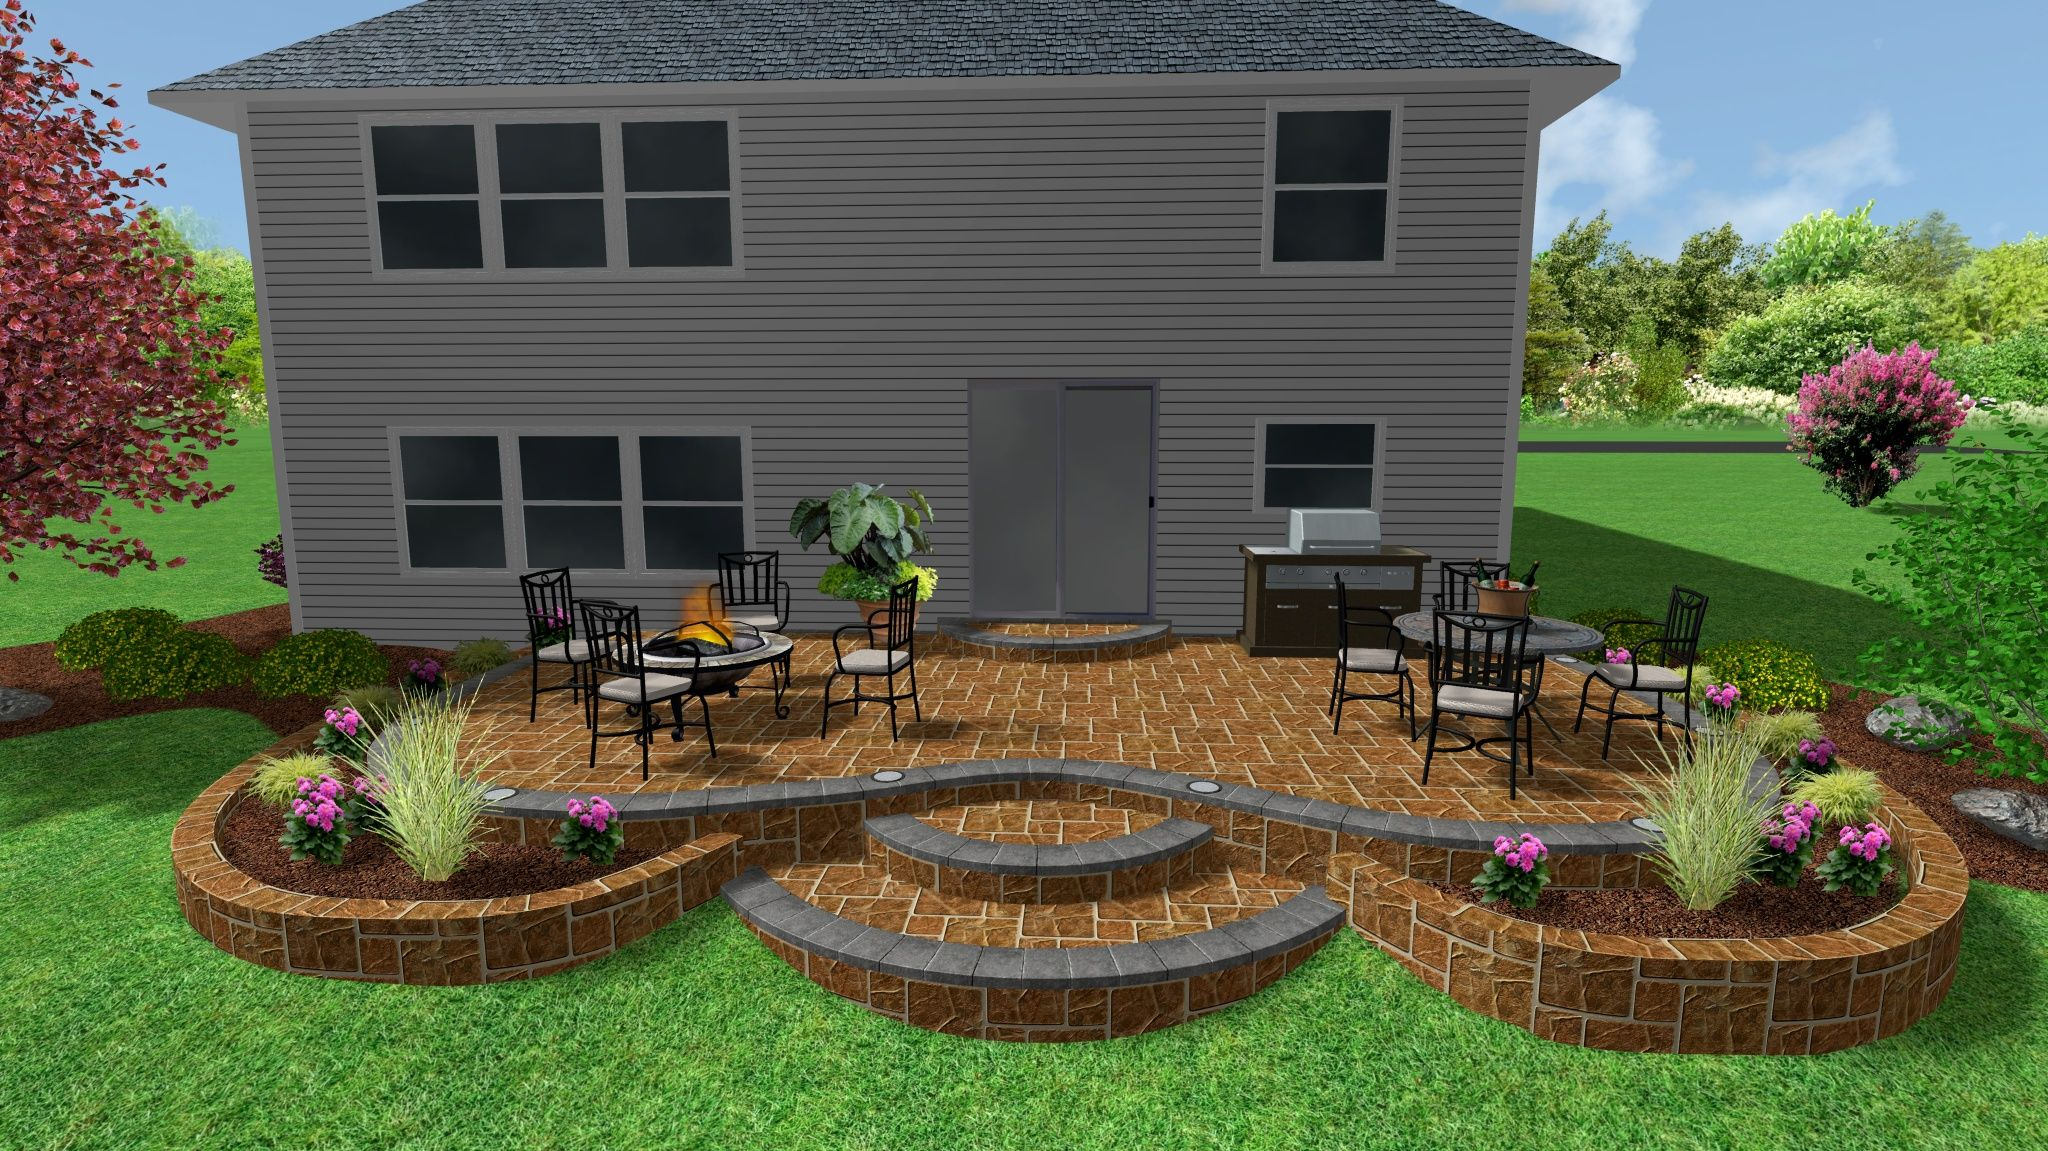 Pin on Porches and Decks on Raised Concrete Patio Ideas id=92690